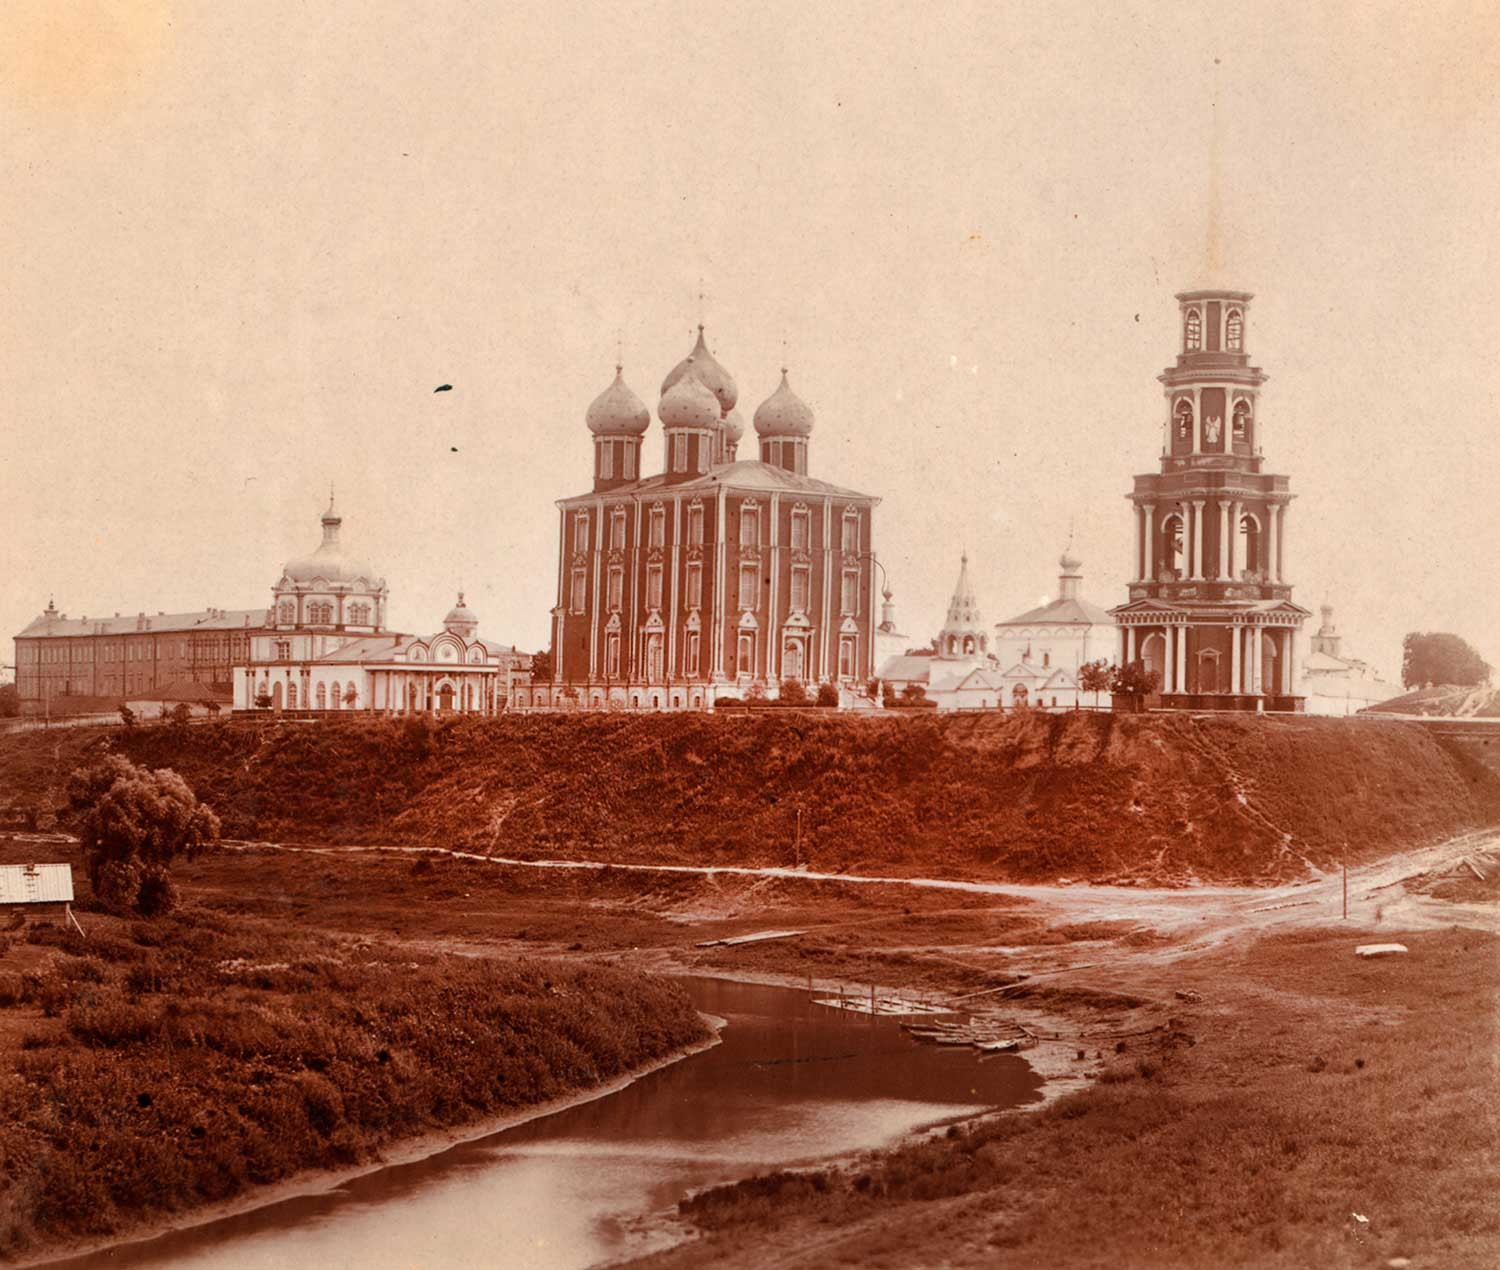 Ryazan Kremlin, northwest view. From left: Archbishop's Palace, Cathedral of Nativity of Christ, Dormition Cathedral, Epiphany Church, Transfiguration Cathedral, bell tower. Summer 1912.